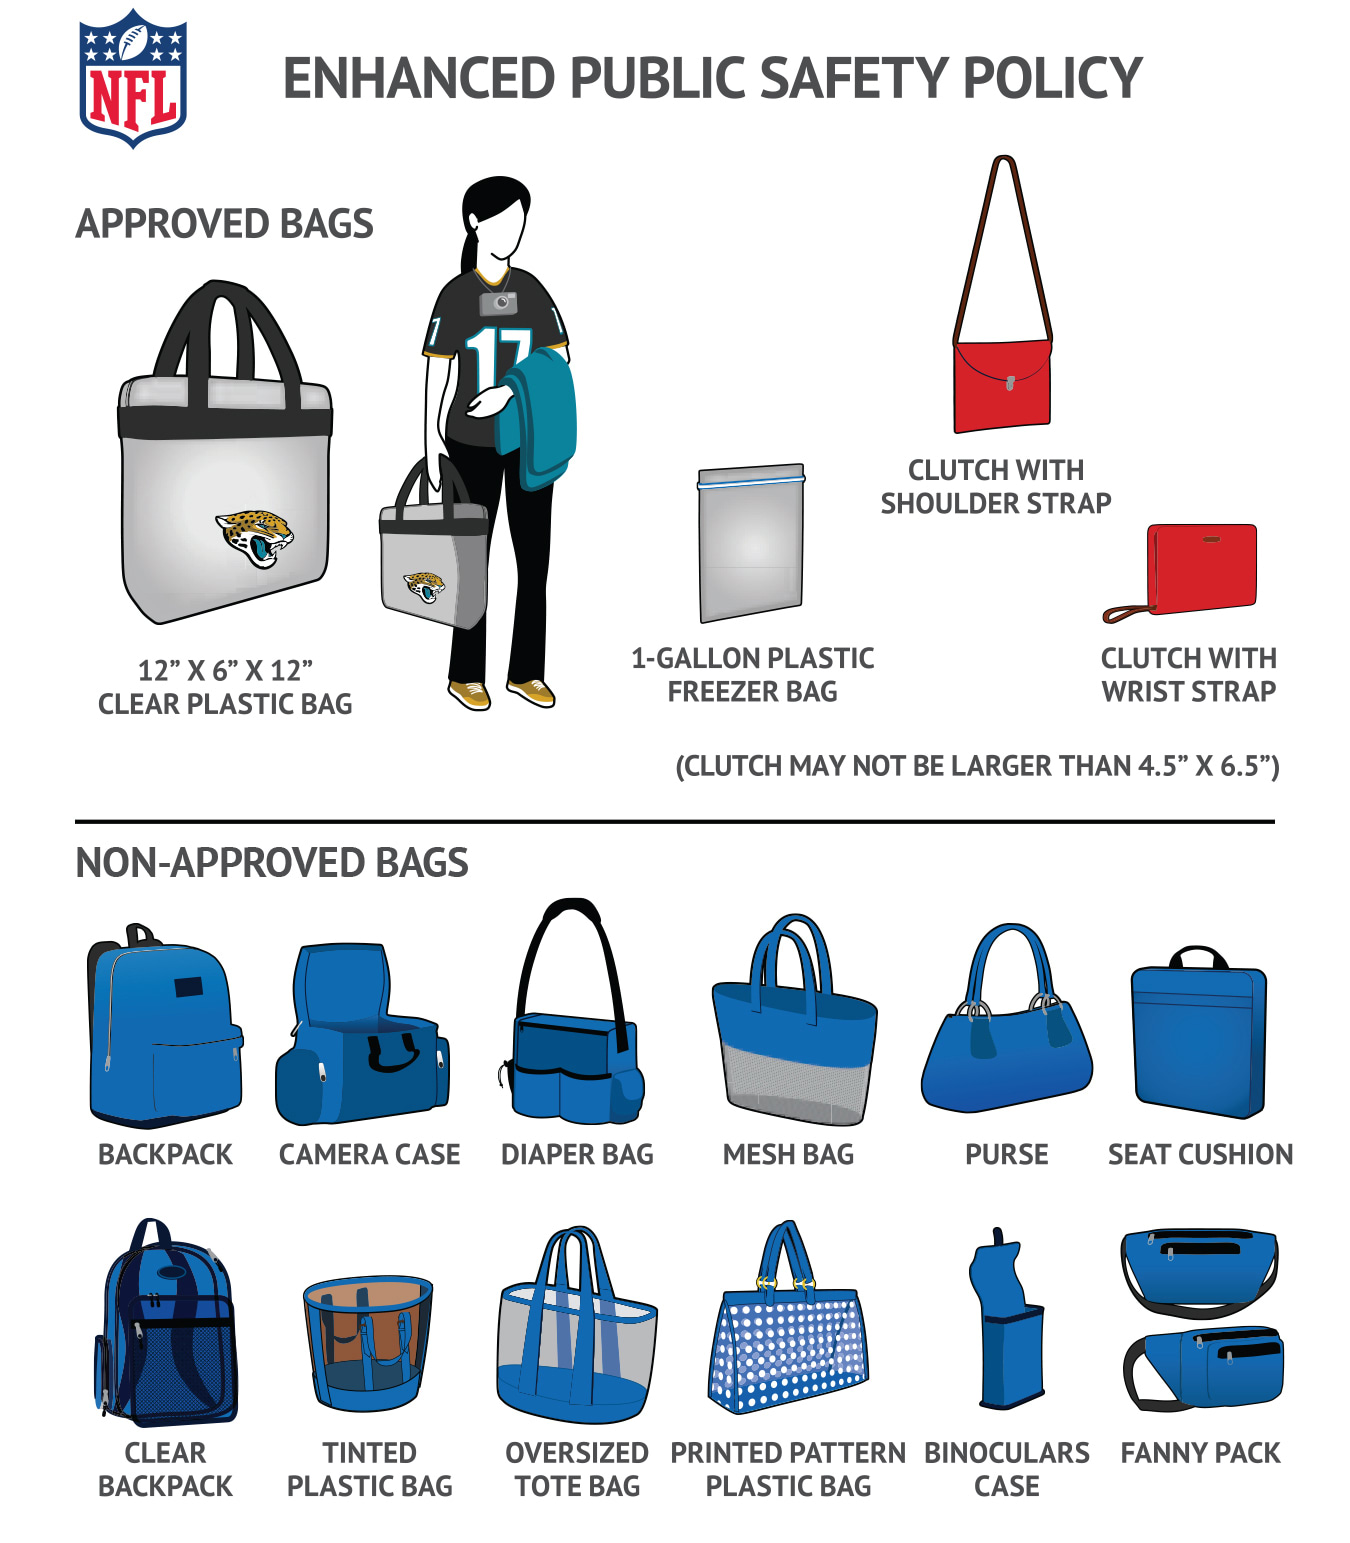 a994170db52 Jacksonville Jaguars, Official Site of the Jacksonville Jaguars